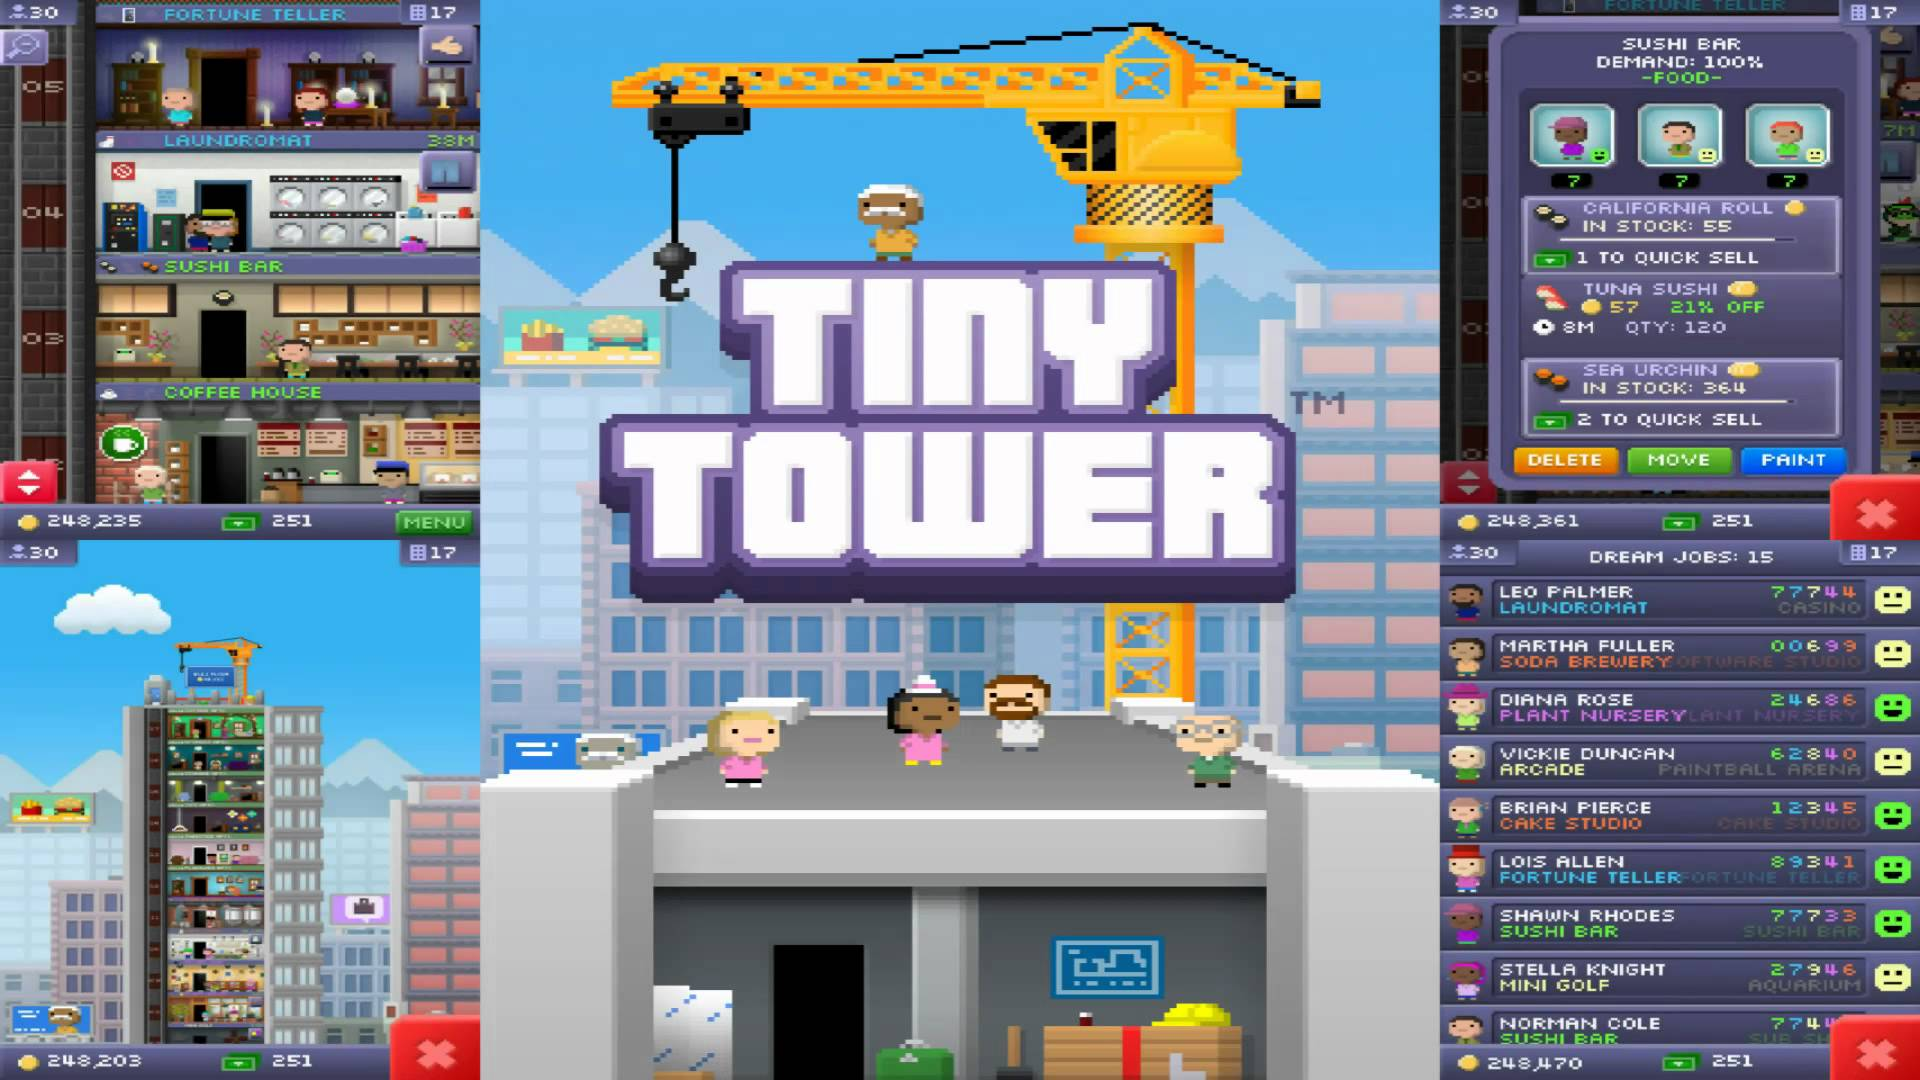 Saison 3 & Tiny Tower